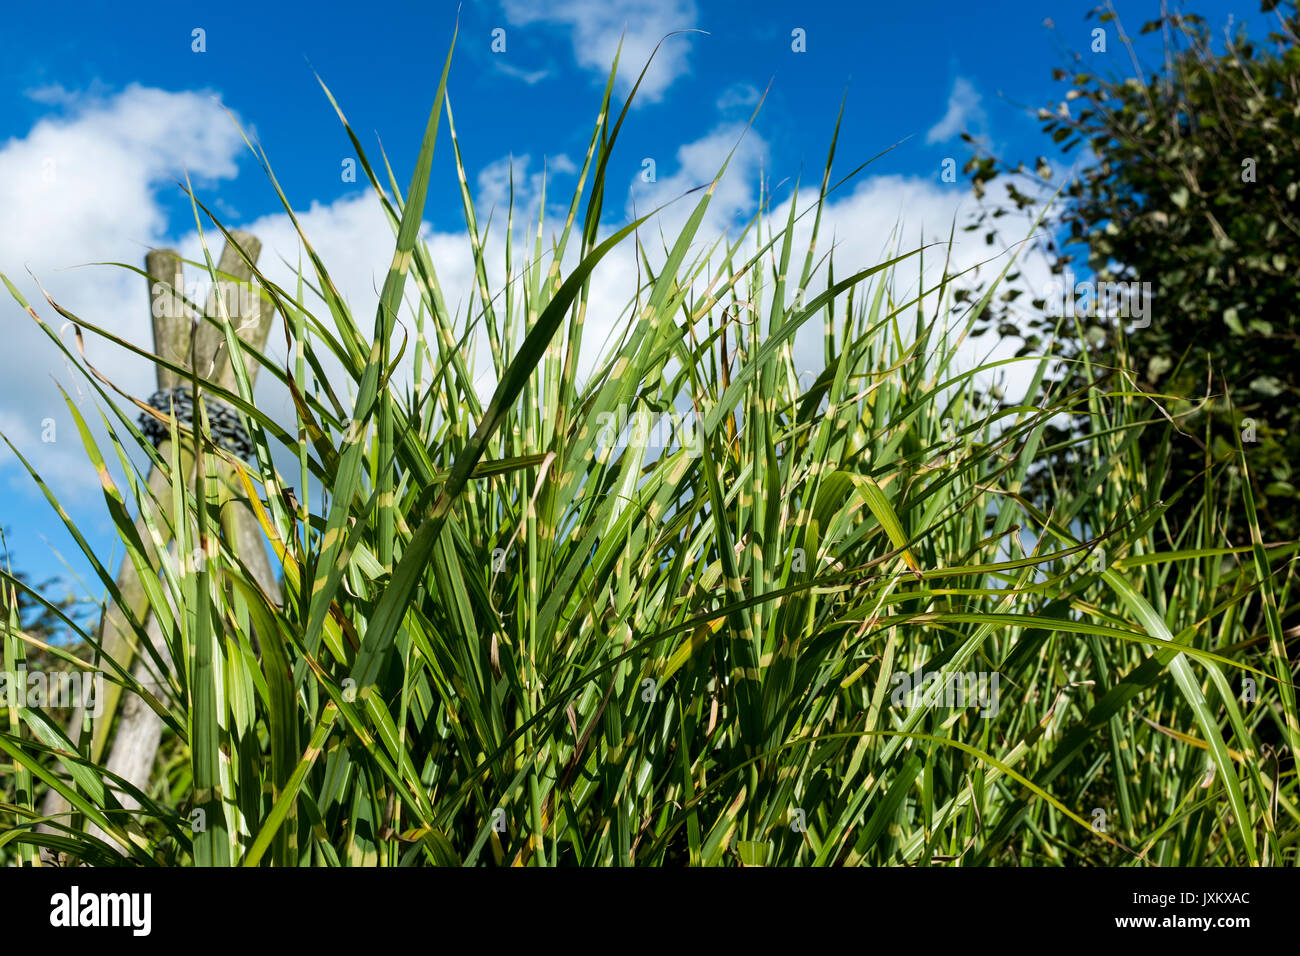 Zebra Chinaschilf Miscanthus Sinensis Zebrinus Garten U Zebra Grass Stock Photos Zebra Grass Stock Images Alamy